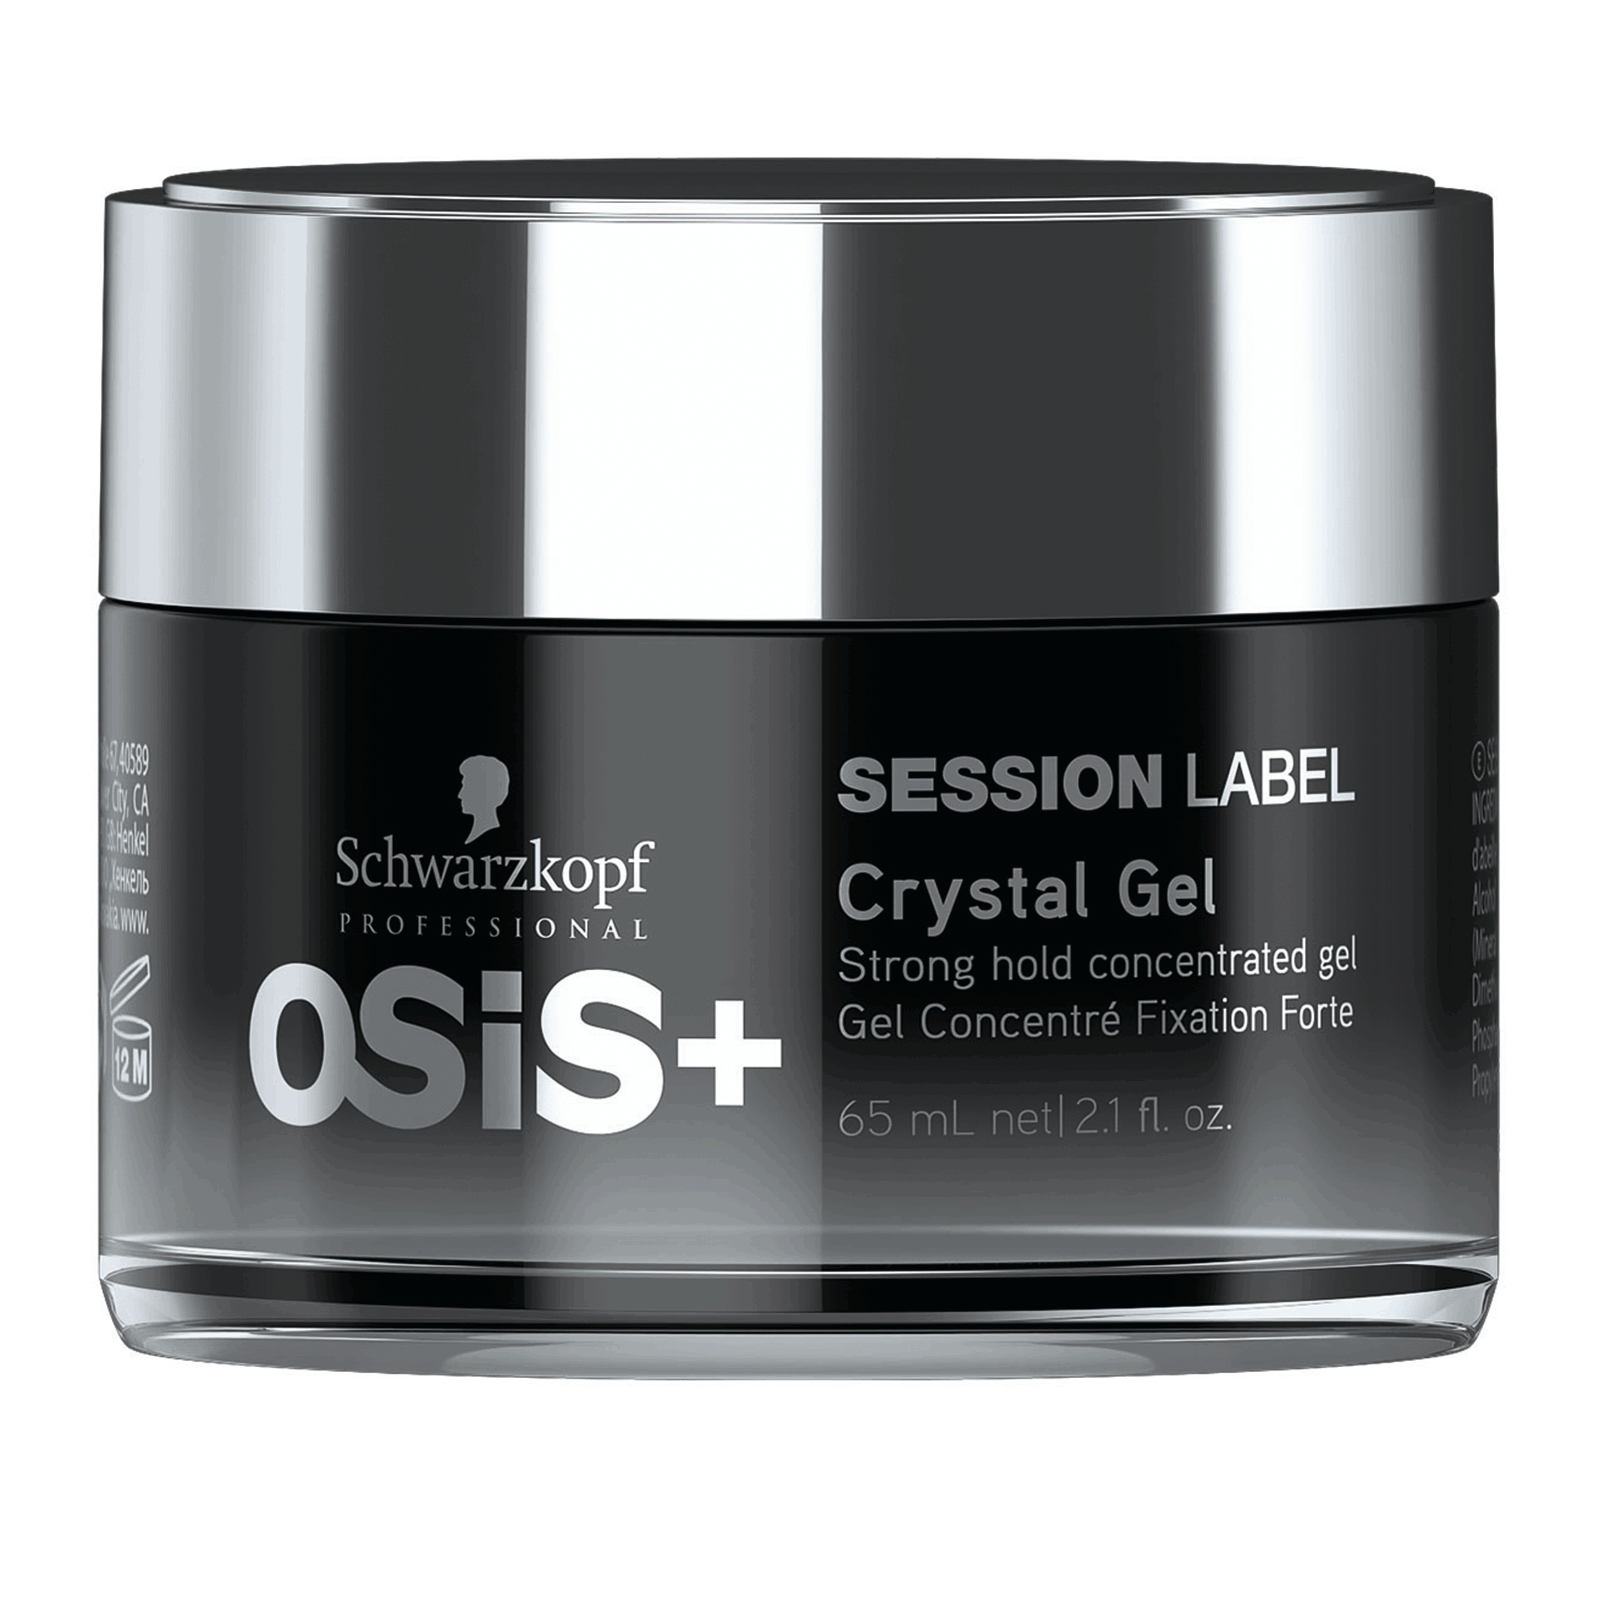 OSIS+ Session Label - Crystal Gel